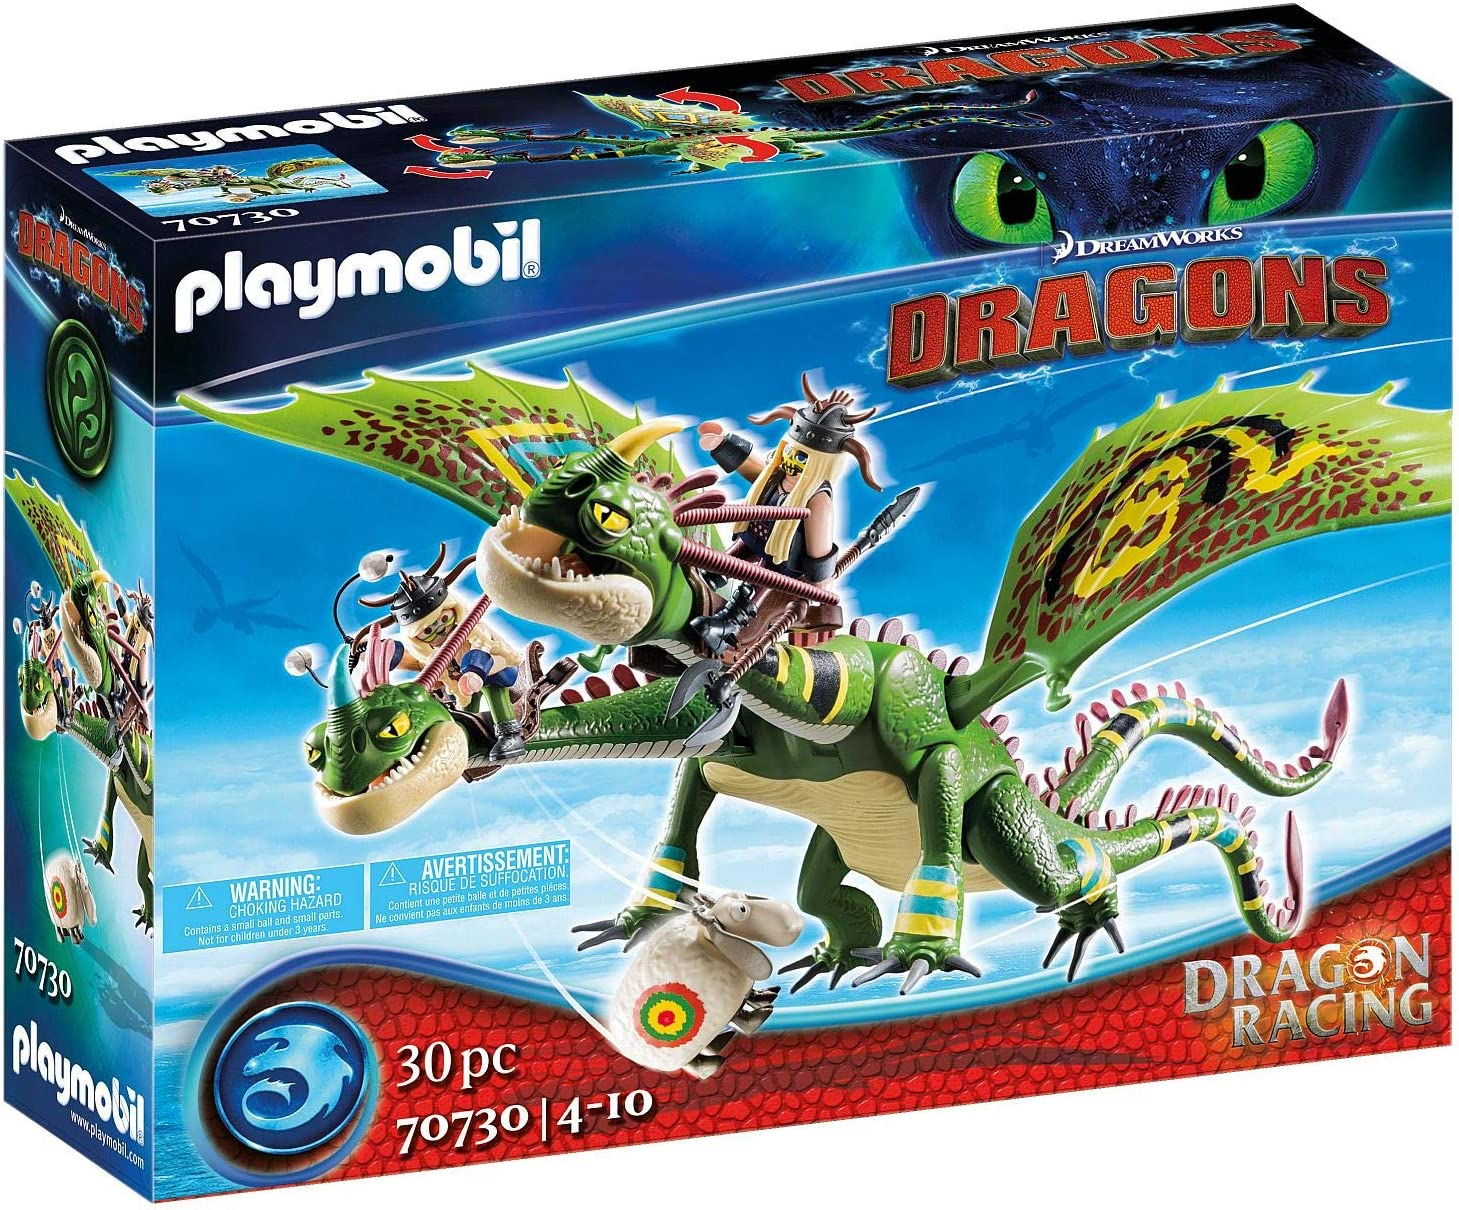 Playmobil Dragon Racing: Max 80% OFF Discount mail order Ruffnut and Tuffnut with Belch Barf